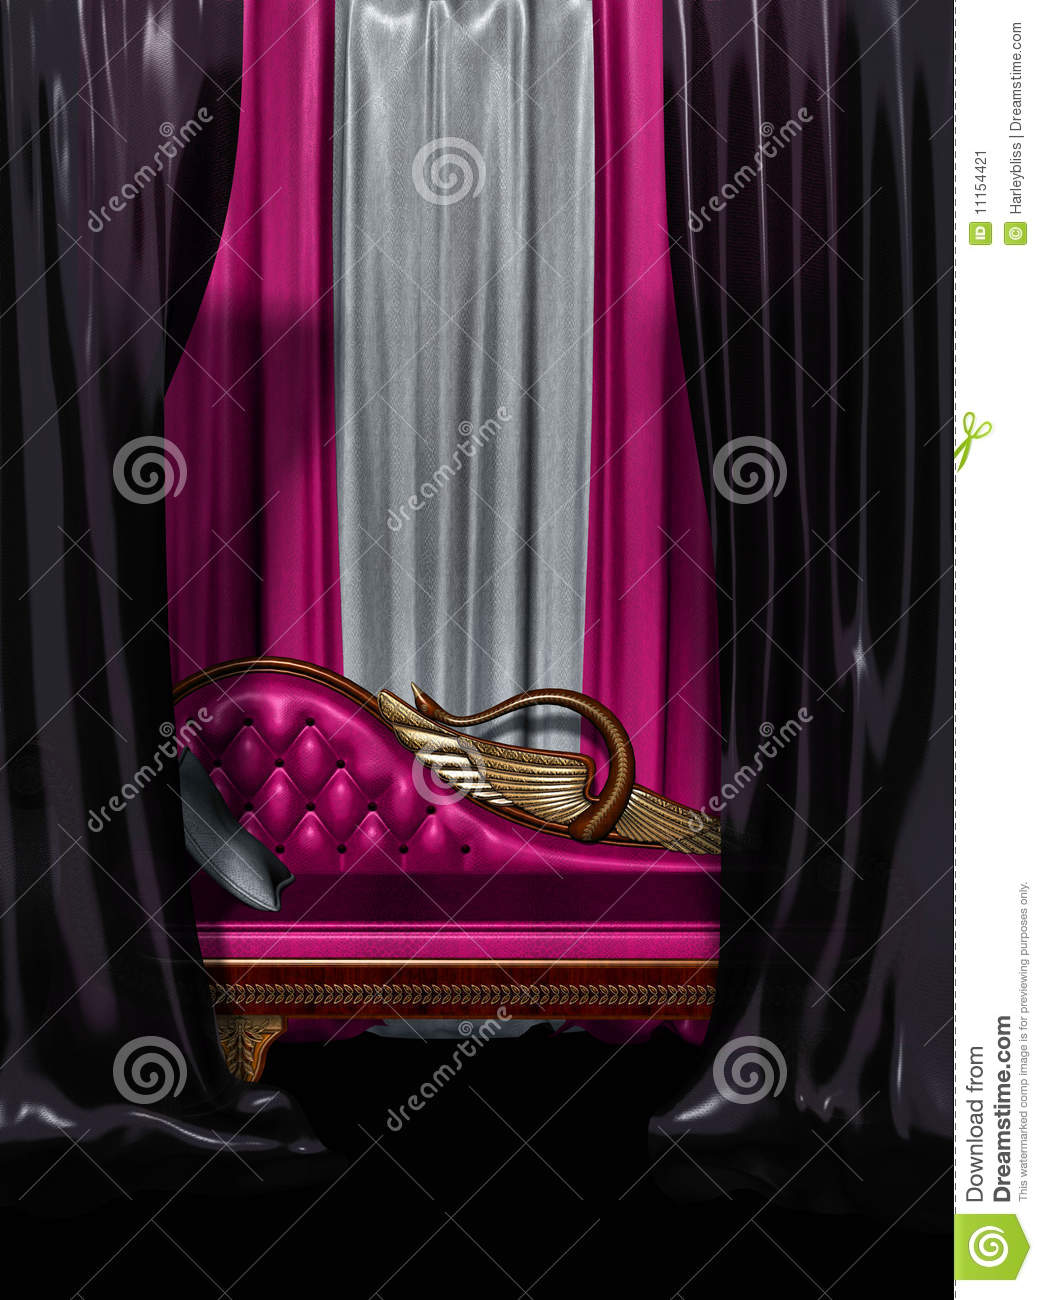 Hot pink curtains - Hot Pink Curtains 21